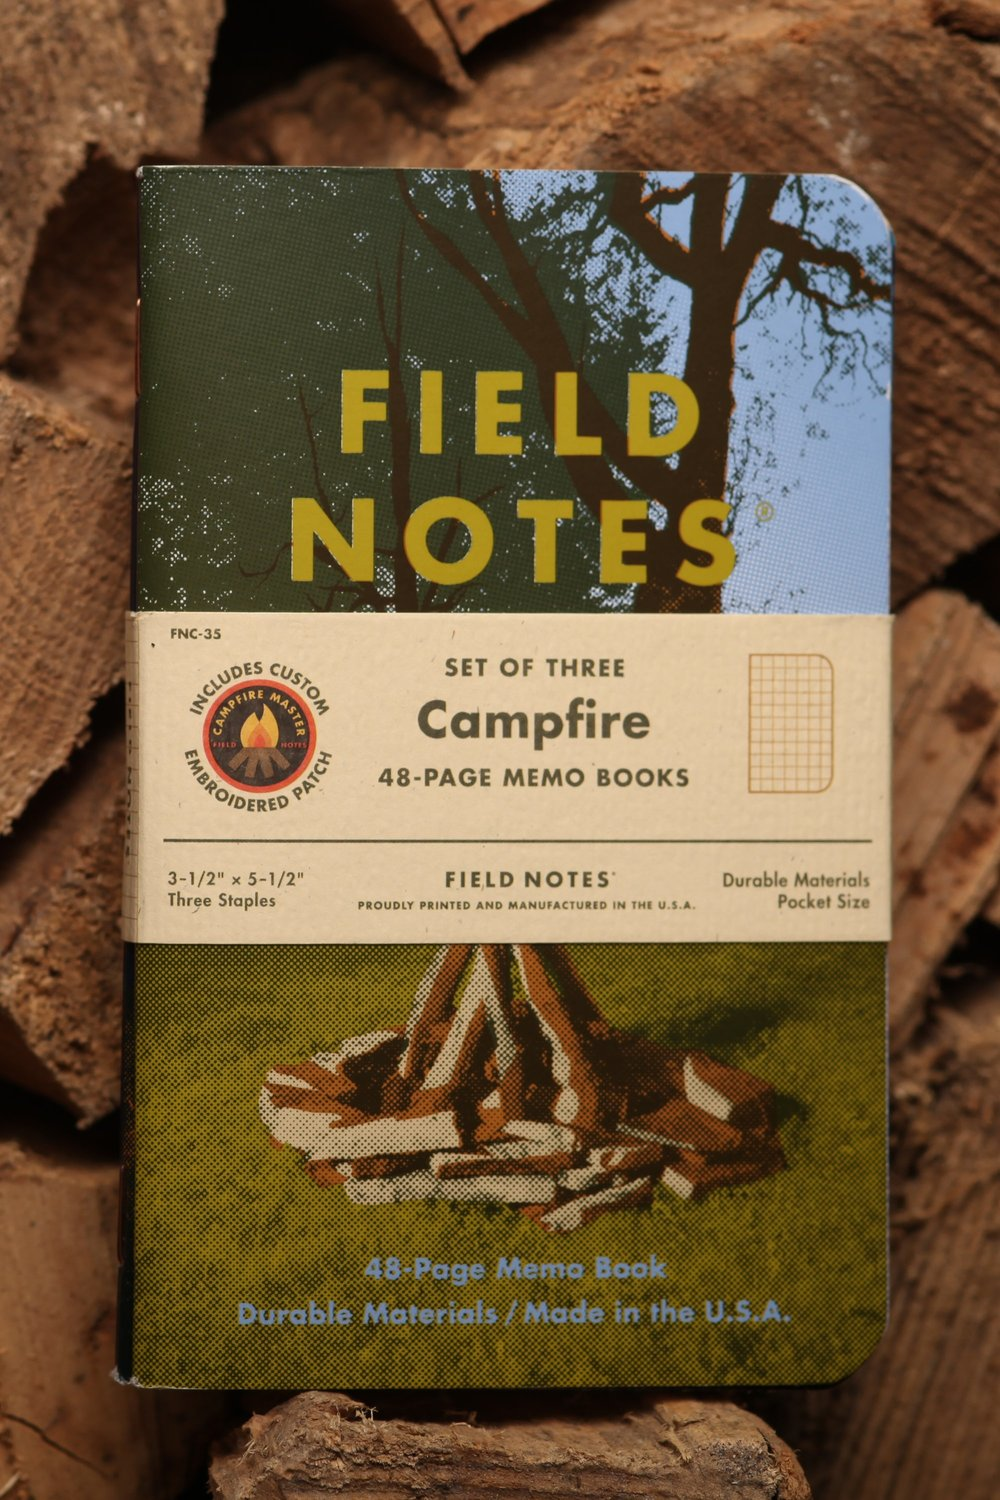 Campfire - Field Notes' 35th Quarterly Edition celebrates a chemical process we witness nearly every day, but rarely take the time to appreciate. Fire gives us heat and light. Fire can frighten and endanger us. With a bit of olive oil, it makes asparagus palatable. But in its most primal, elemental state, it inspires us to gather around and watch it while we share stories, ideas and friendship.